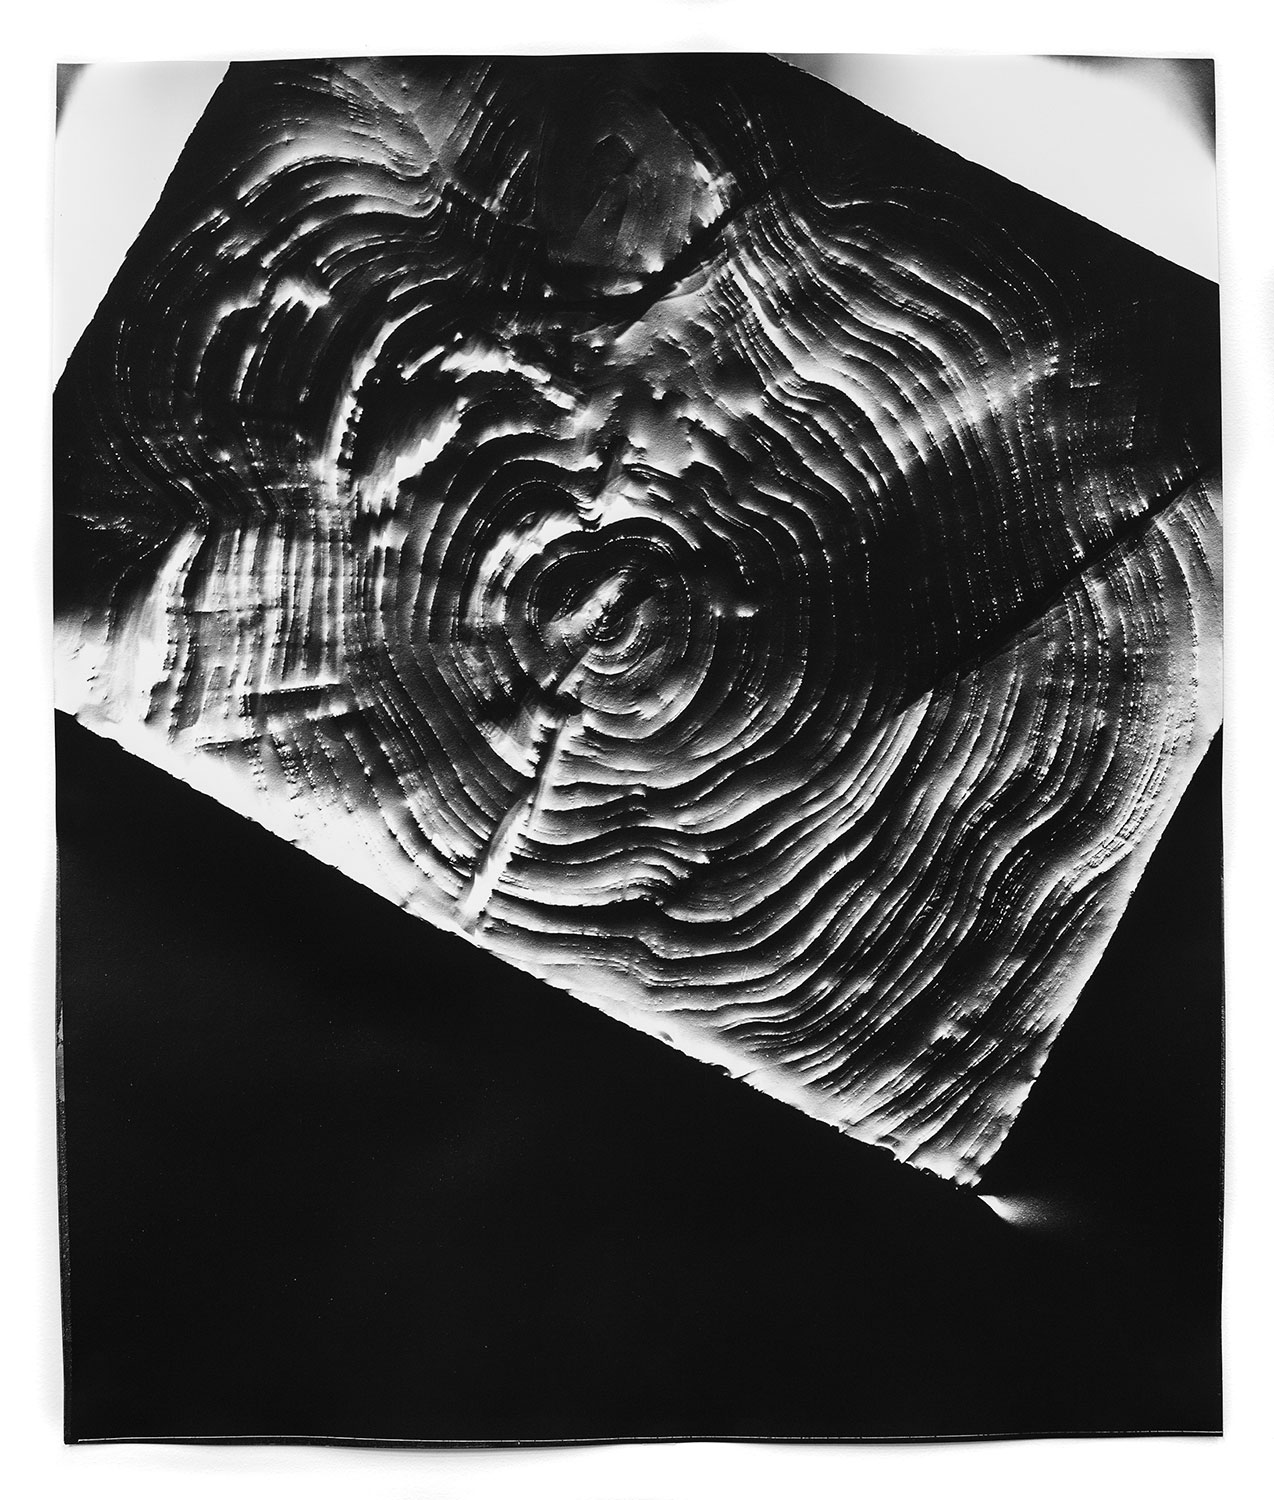 KLEA McKENNA  Automatic Earth 51 , 2017 Photographic rubbing. Unique gelatin silver photogram. 24 x 20 inches